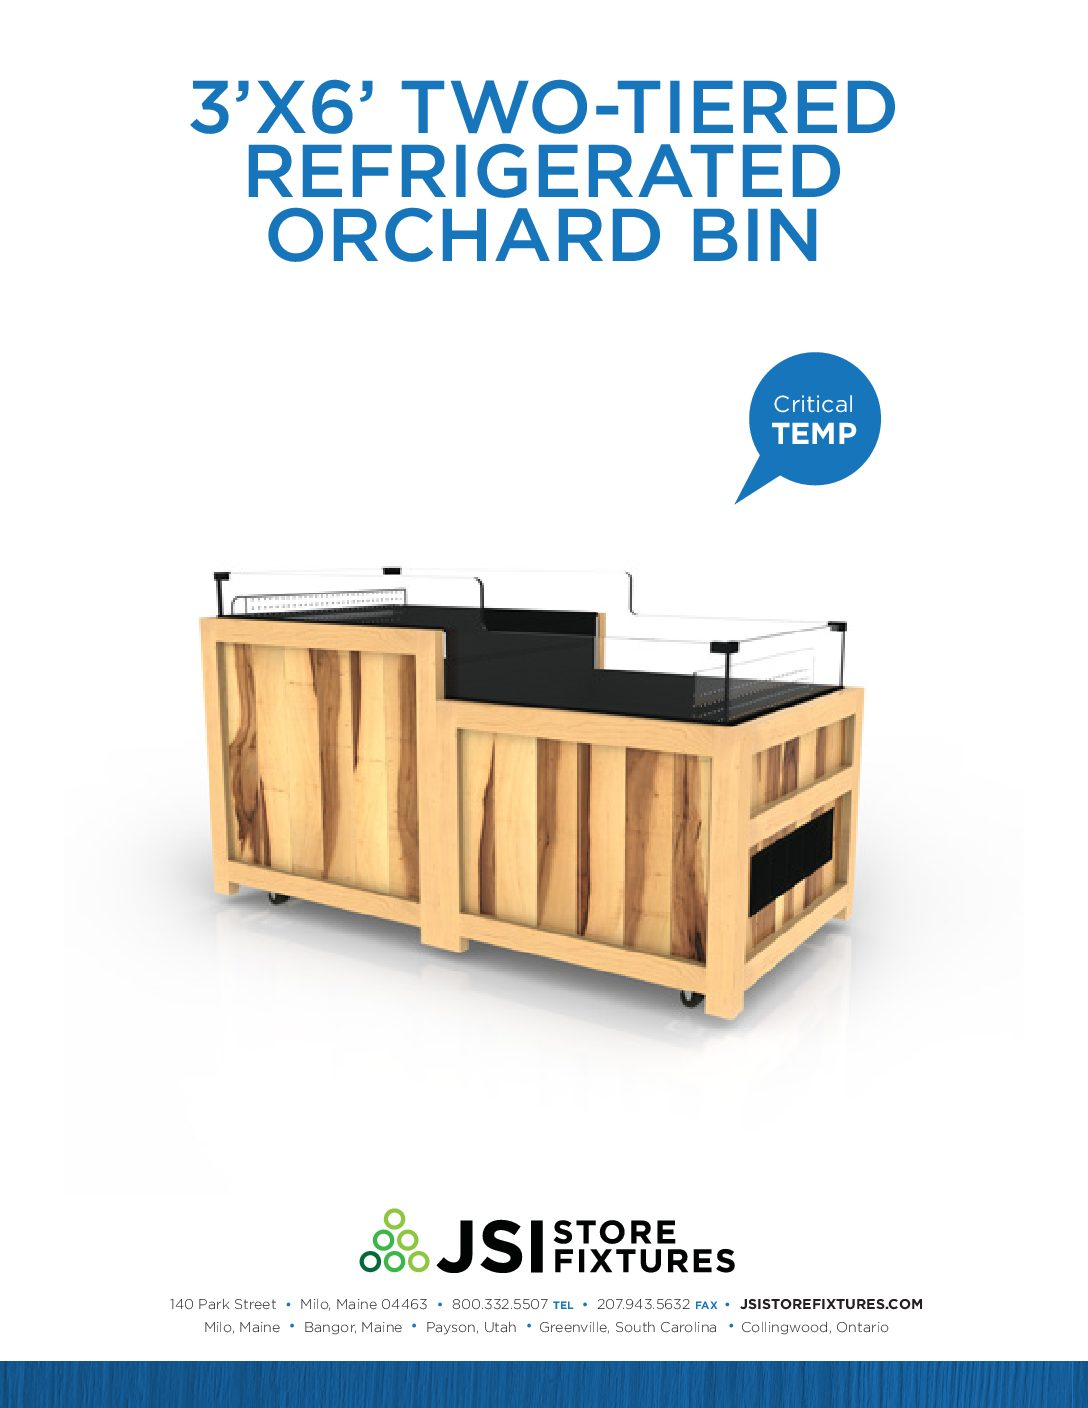 3'x6' Two-Tiered Refrigerated Orchard Bin Spec Sheet